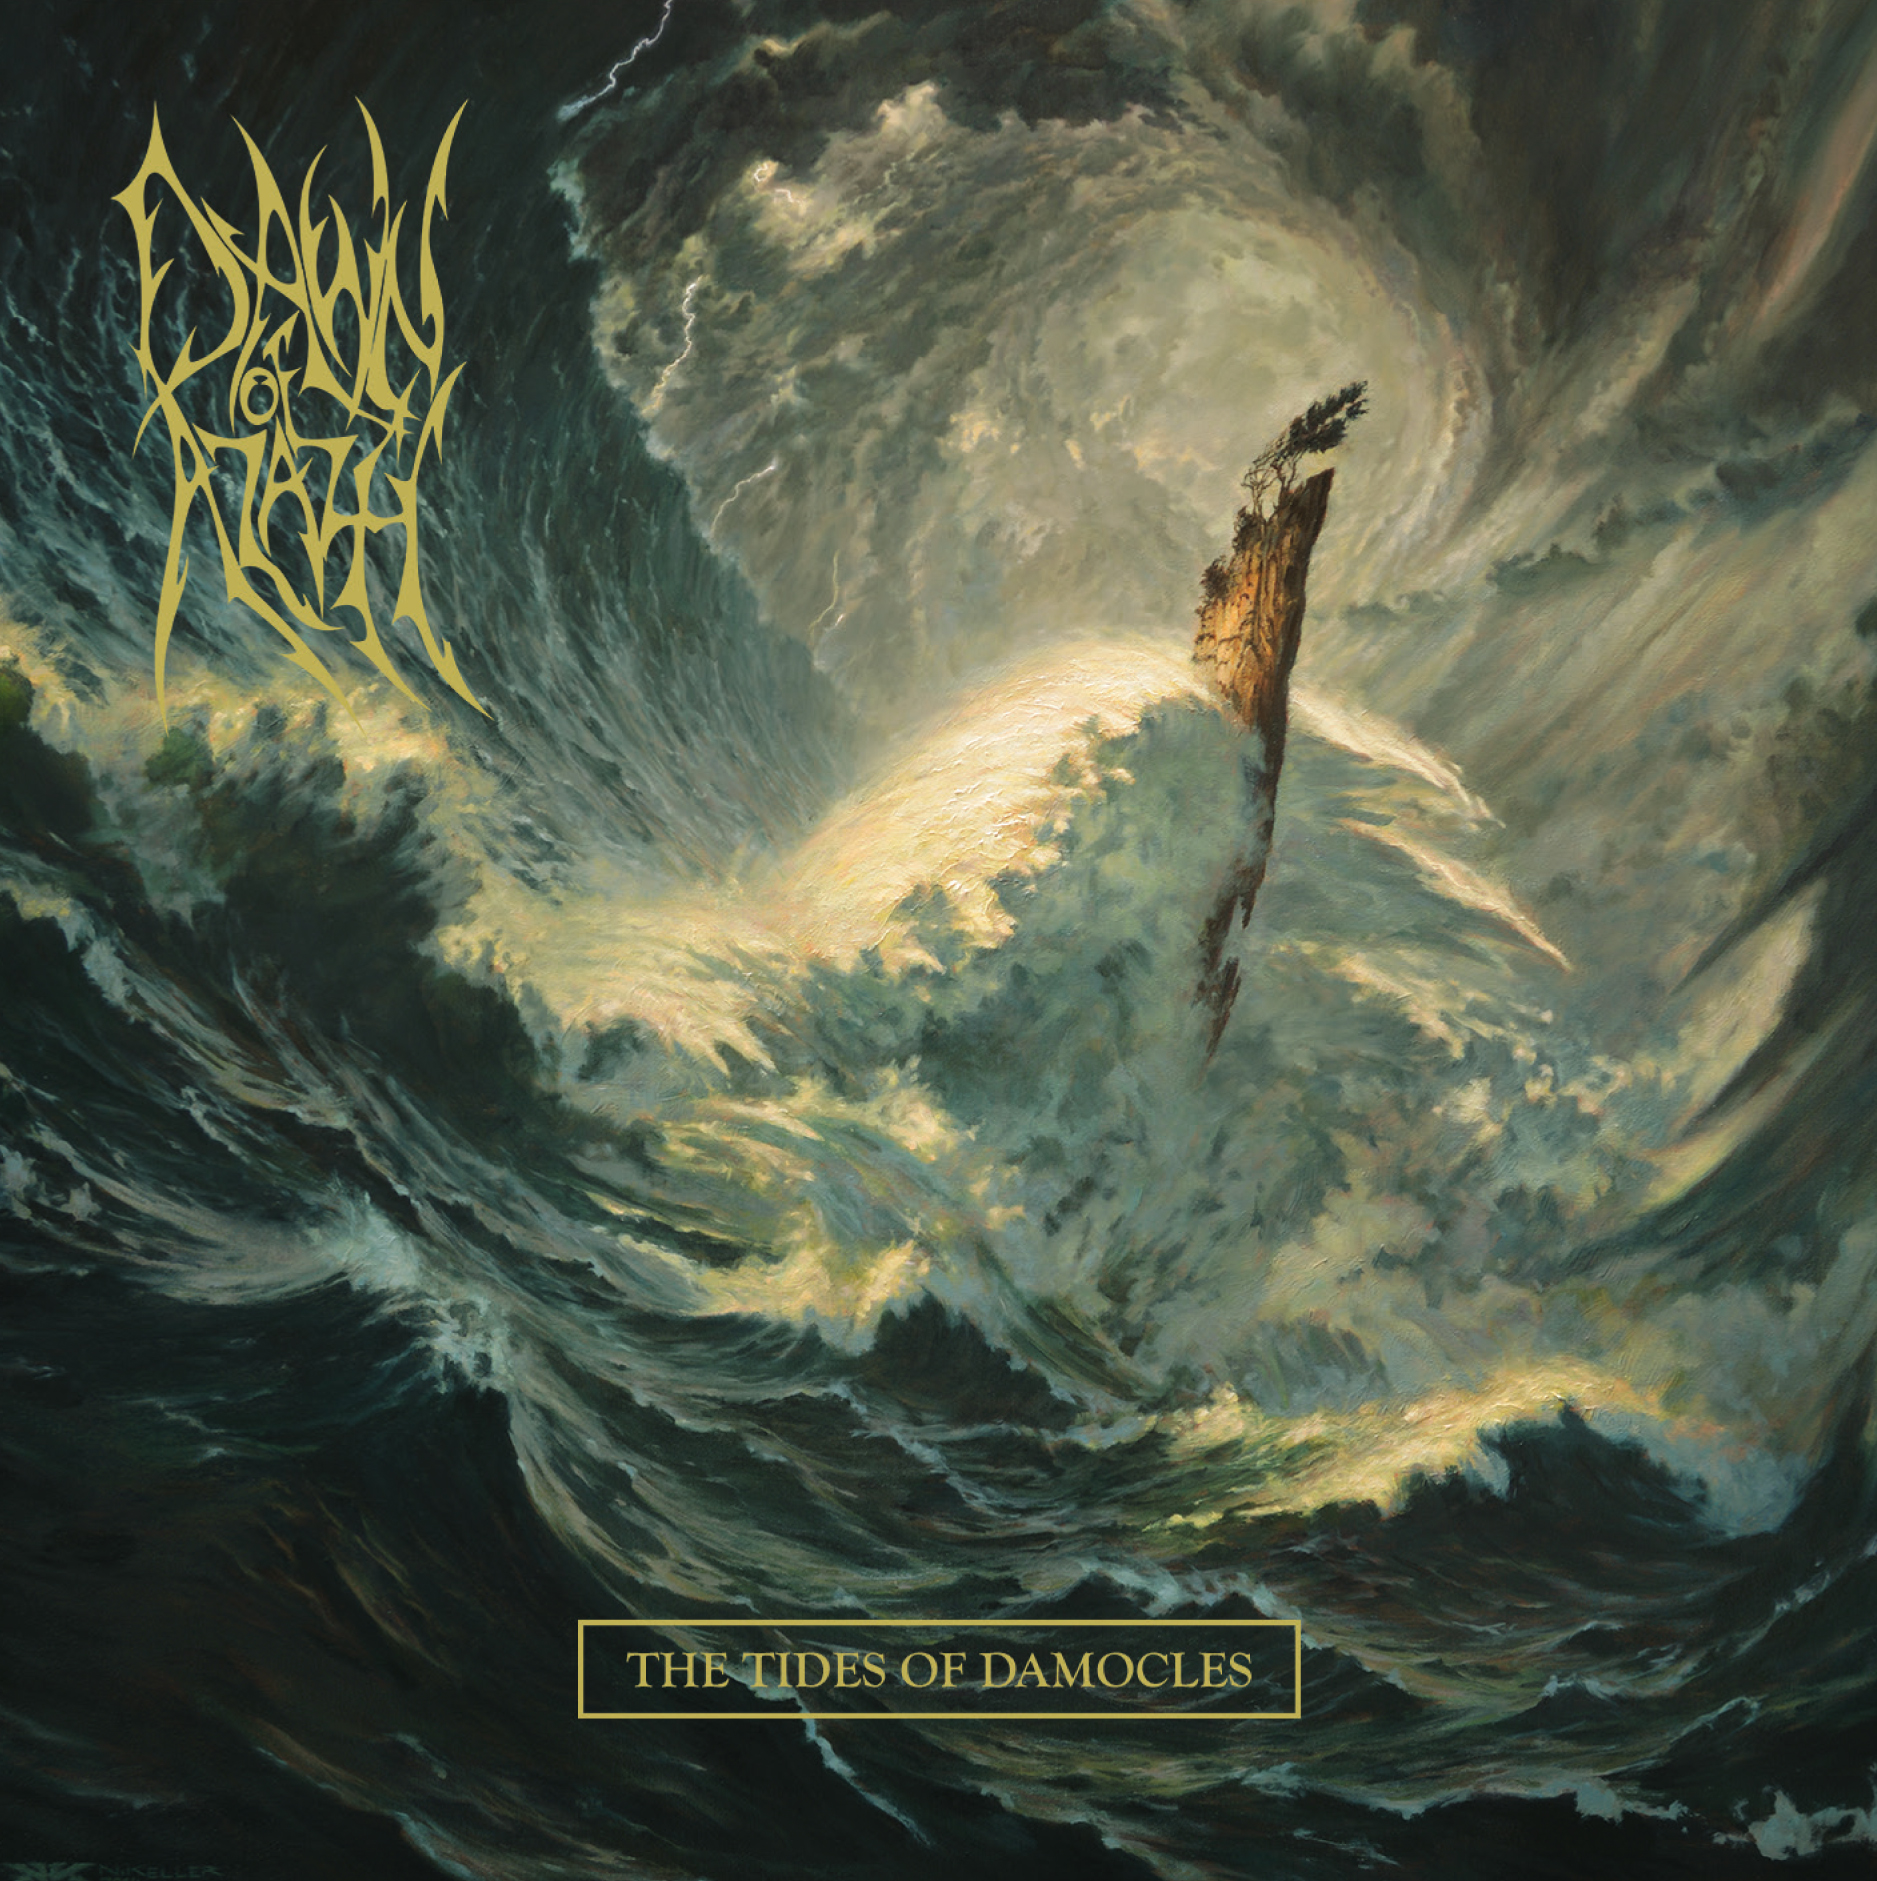 Dawn of Azazel – The Tides of Damocles Review